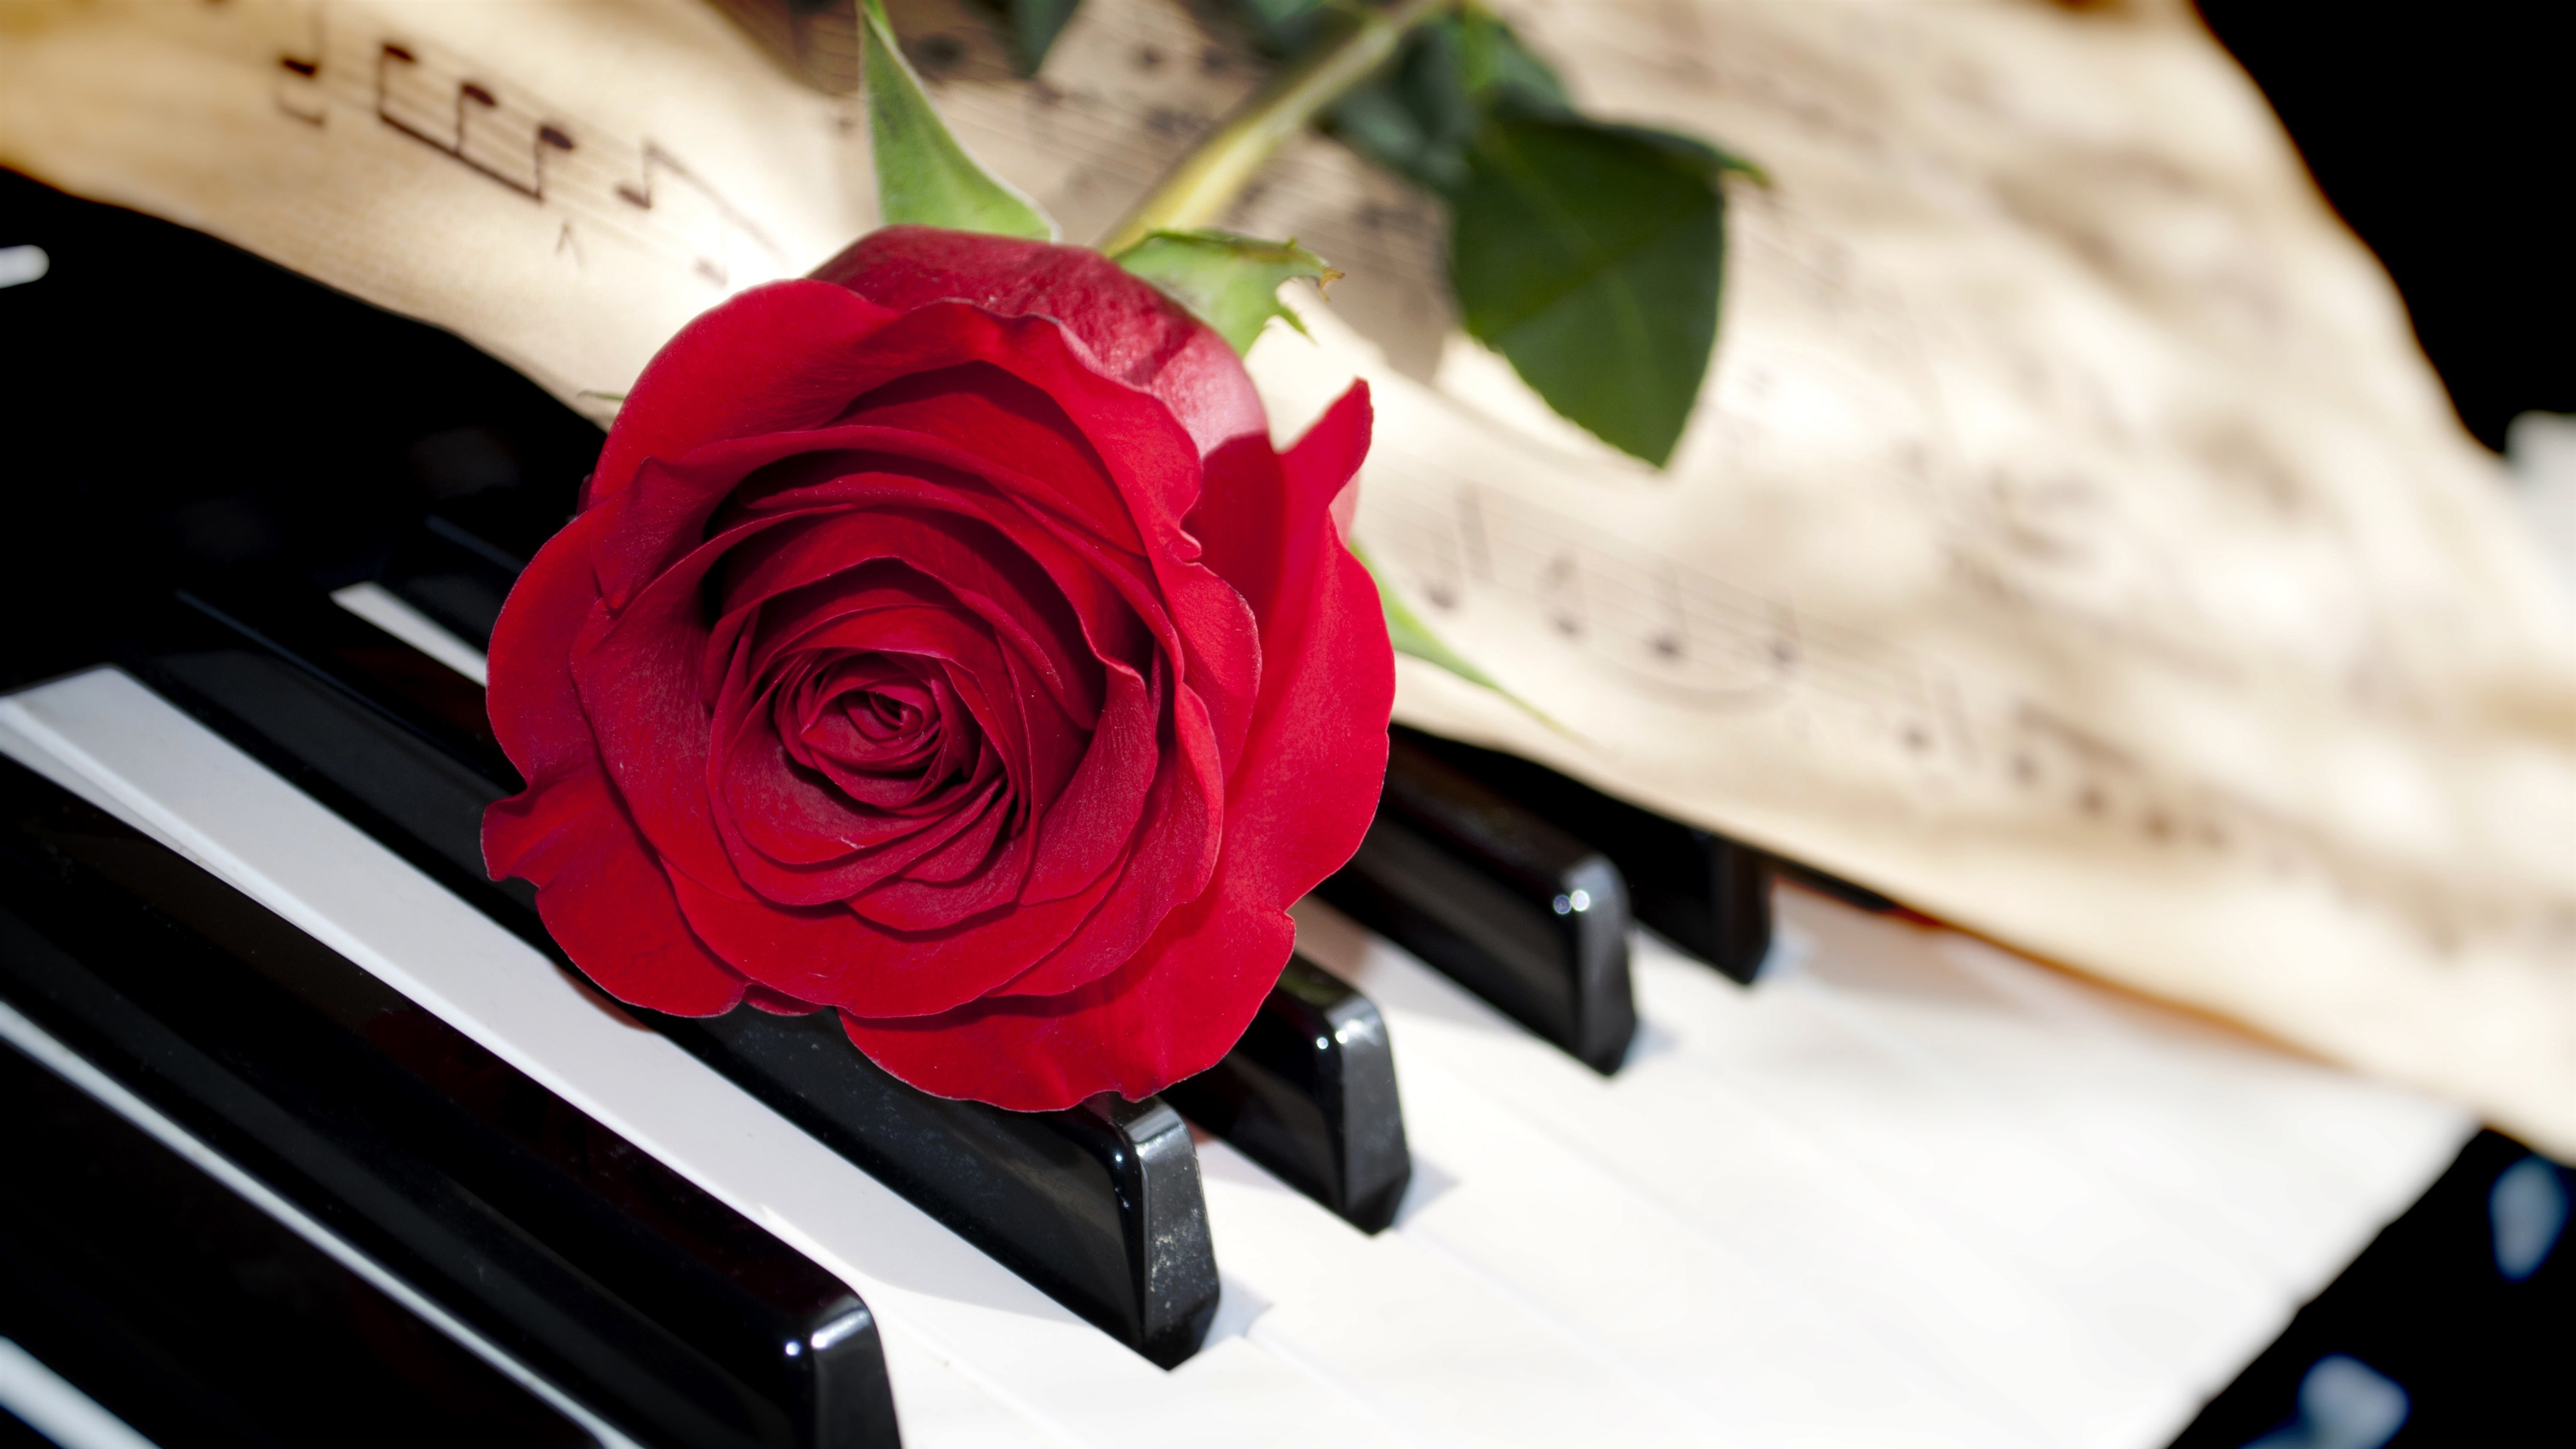 Wallpaper Red Rose Piano 3840x2160 UHD 4K Picture Image